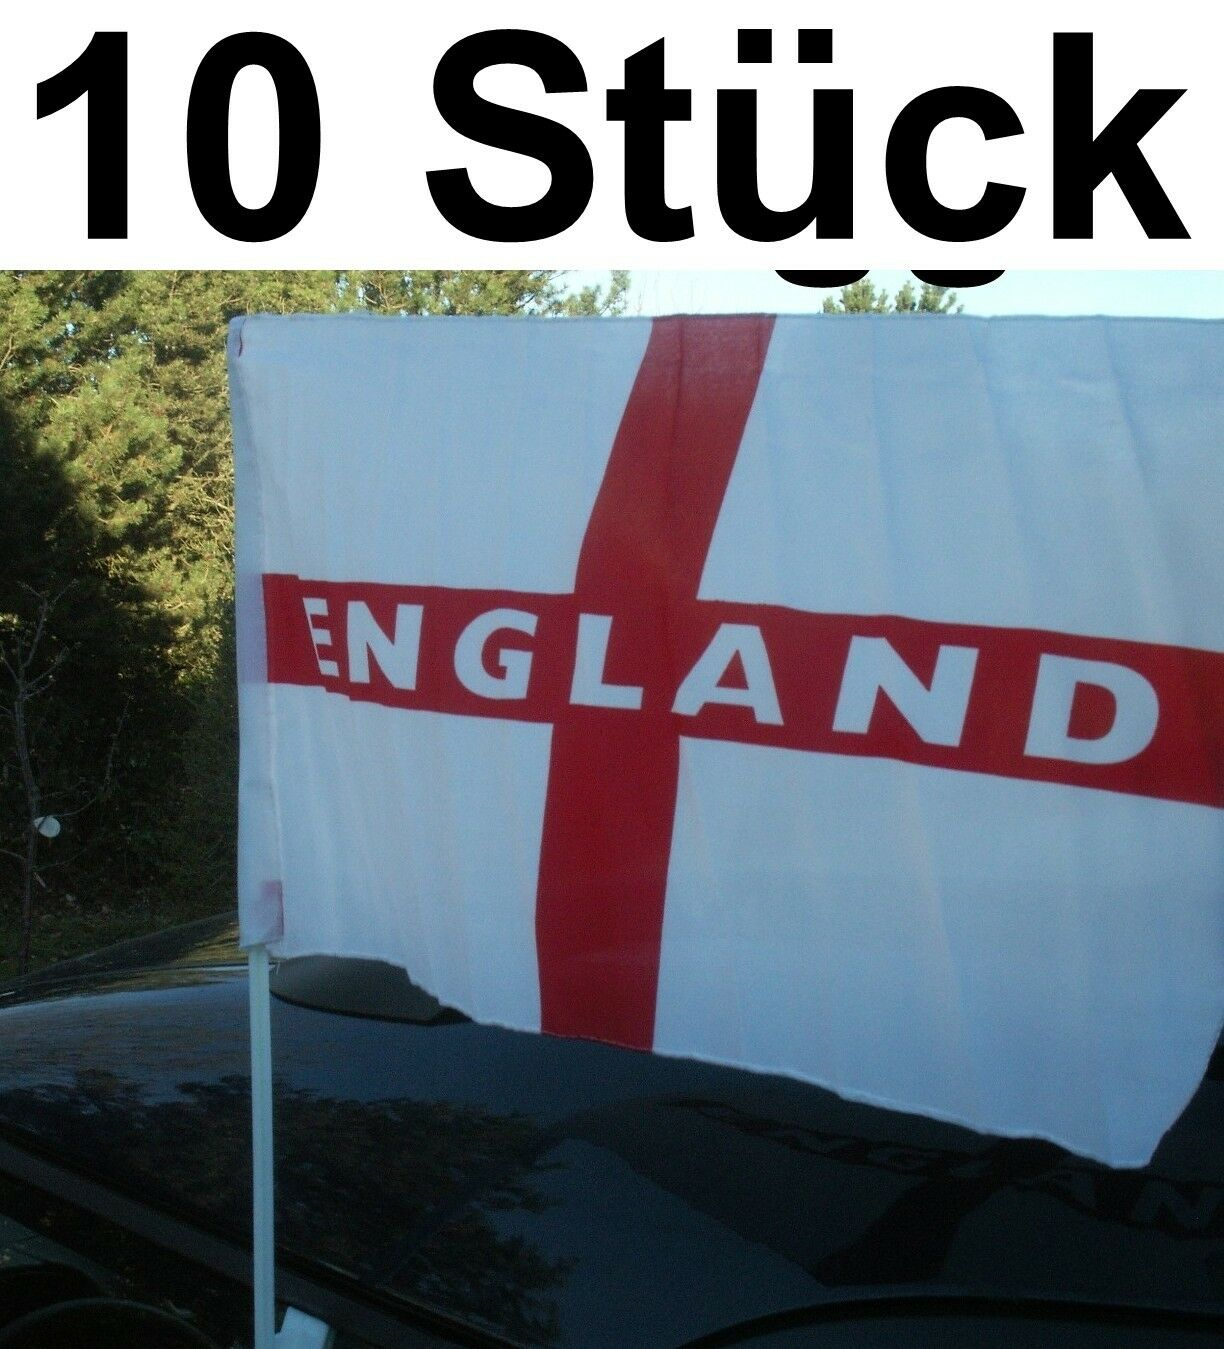 10x Drapeau pour voiture angleterre angleterre angleterre auto carflags FOOTBALL COUPE DU MONDE 99d72d